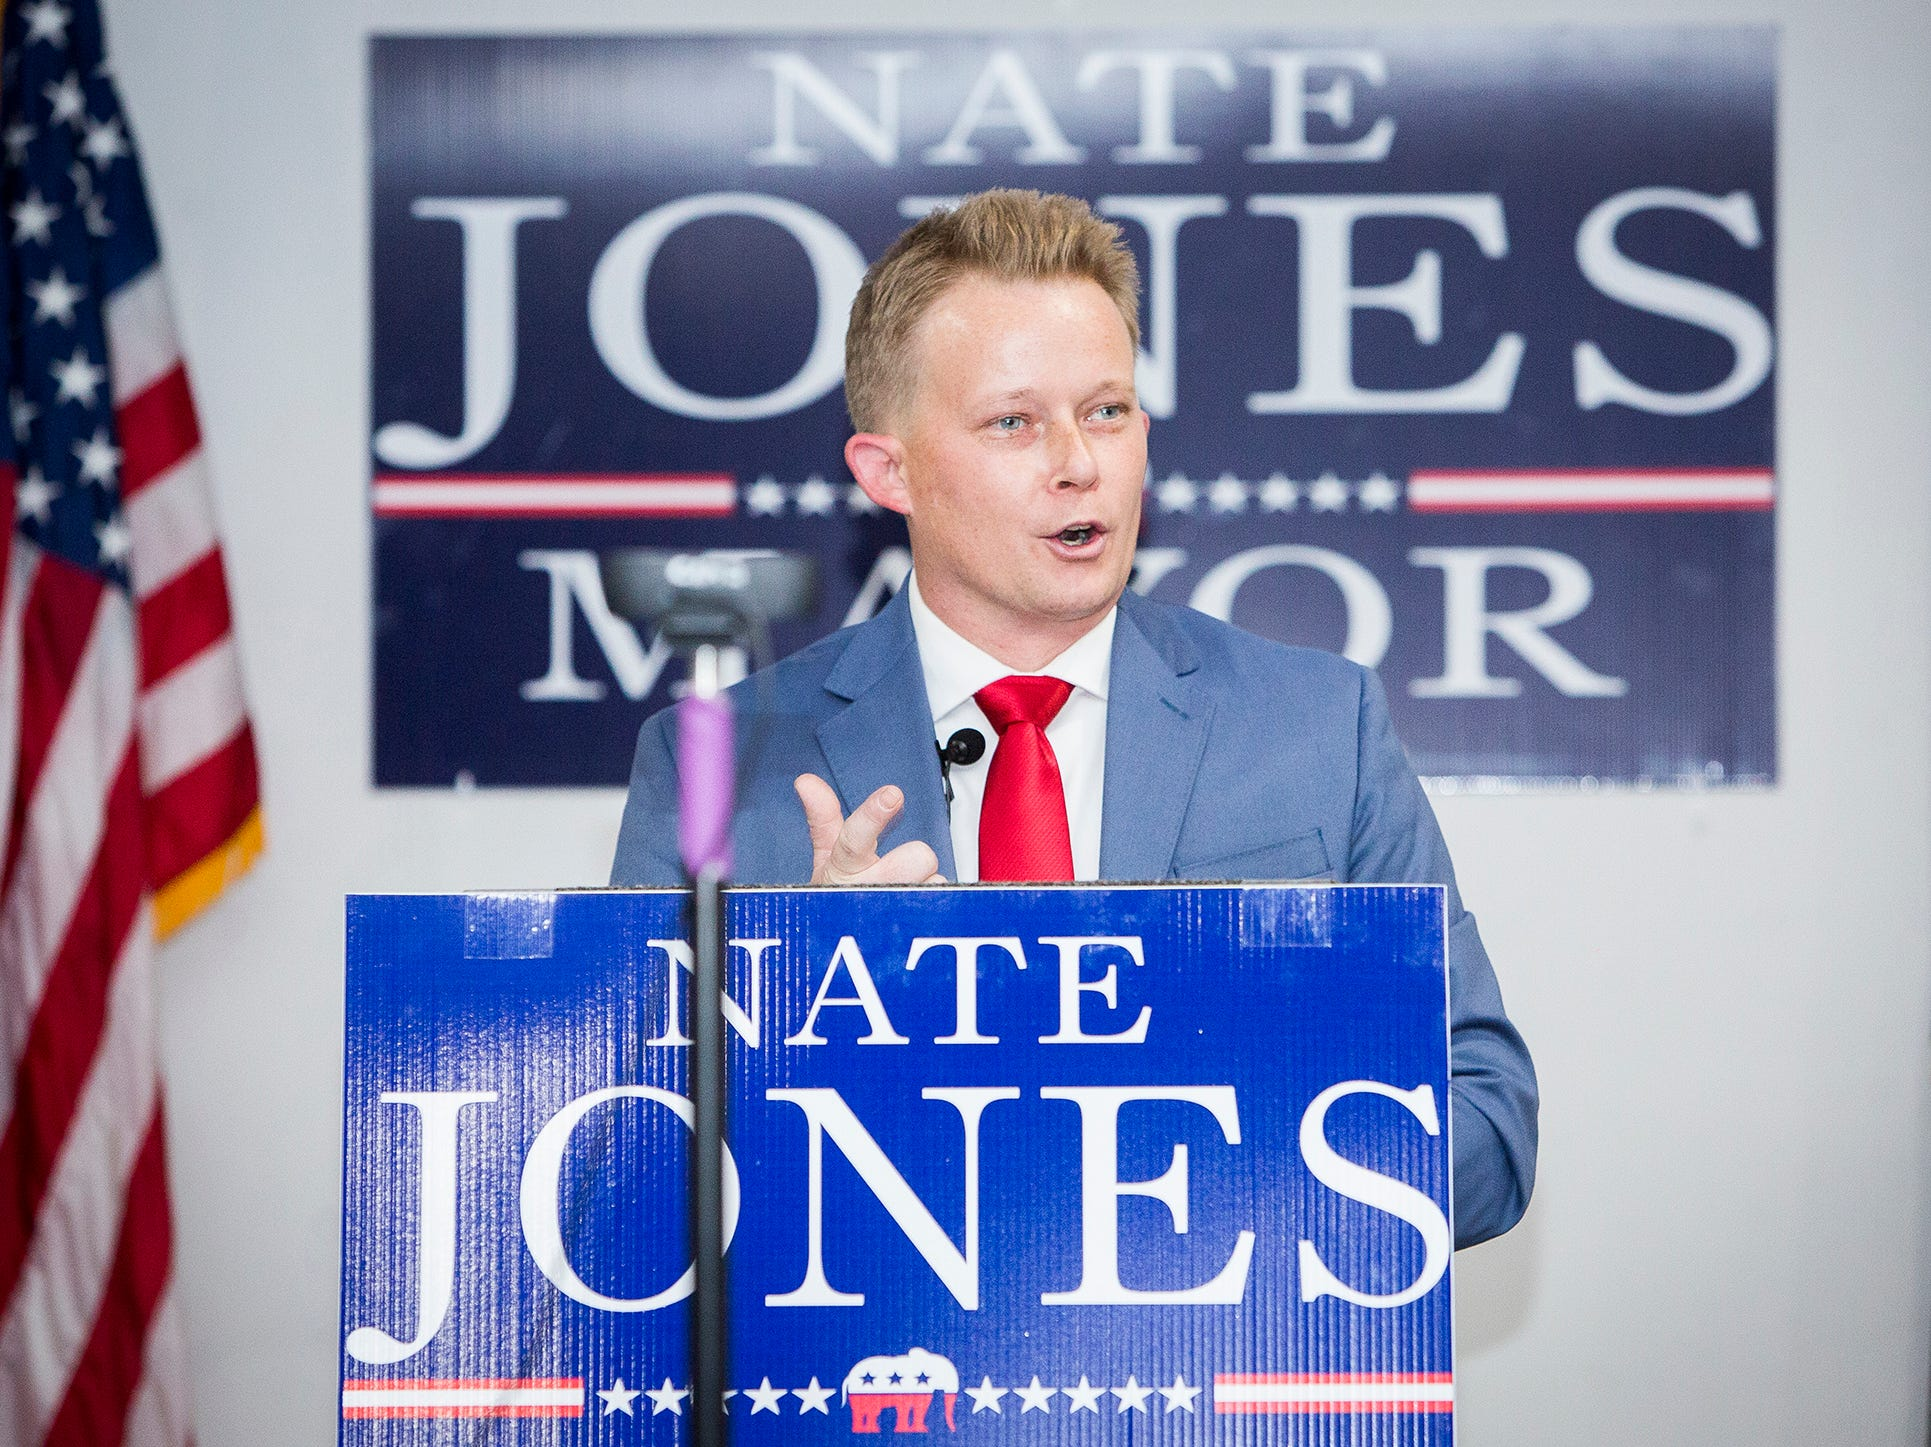 Nate Jones announces his mayoral bid at the American Legion Post 19 in downtown Muncie Thursday evening.